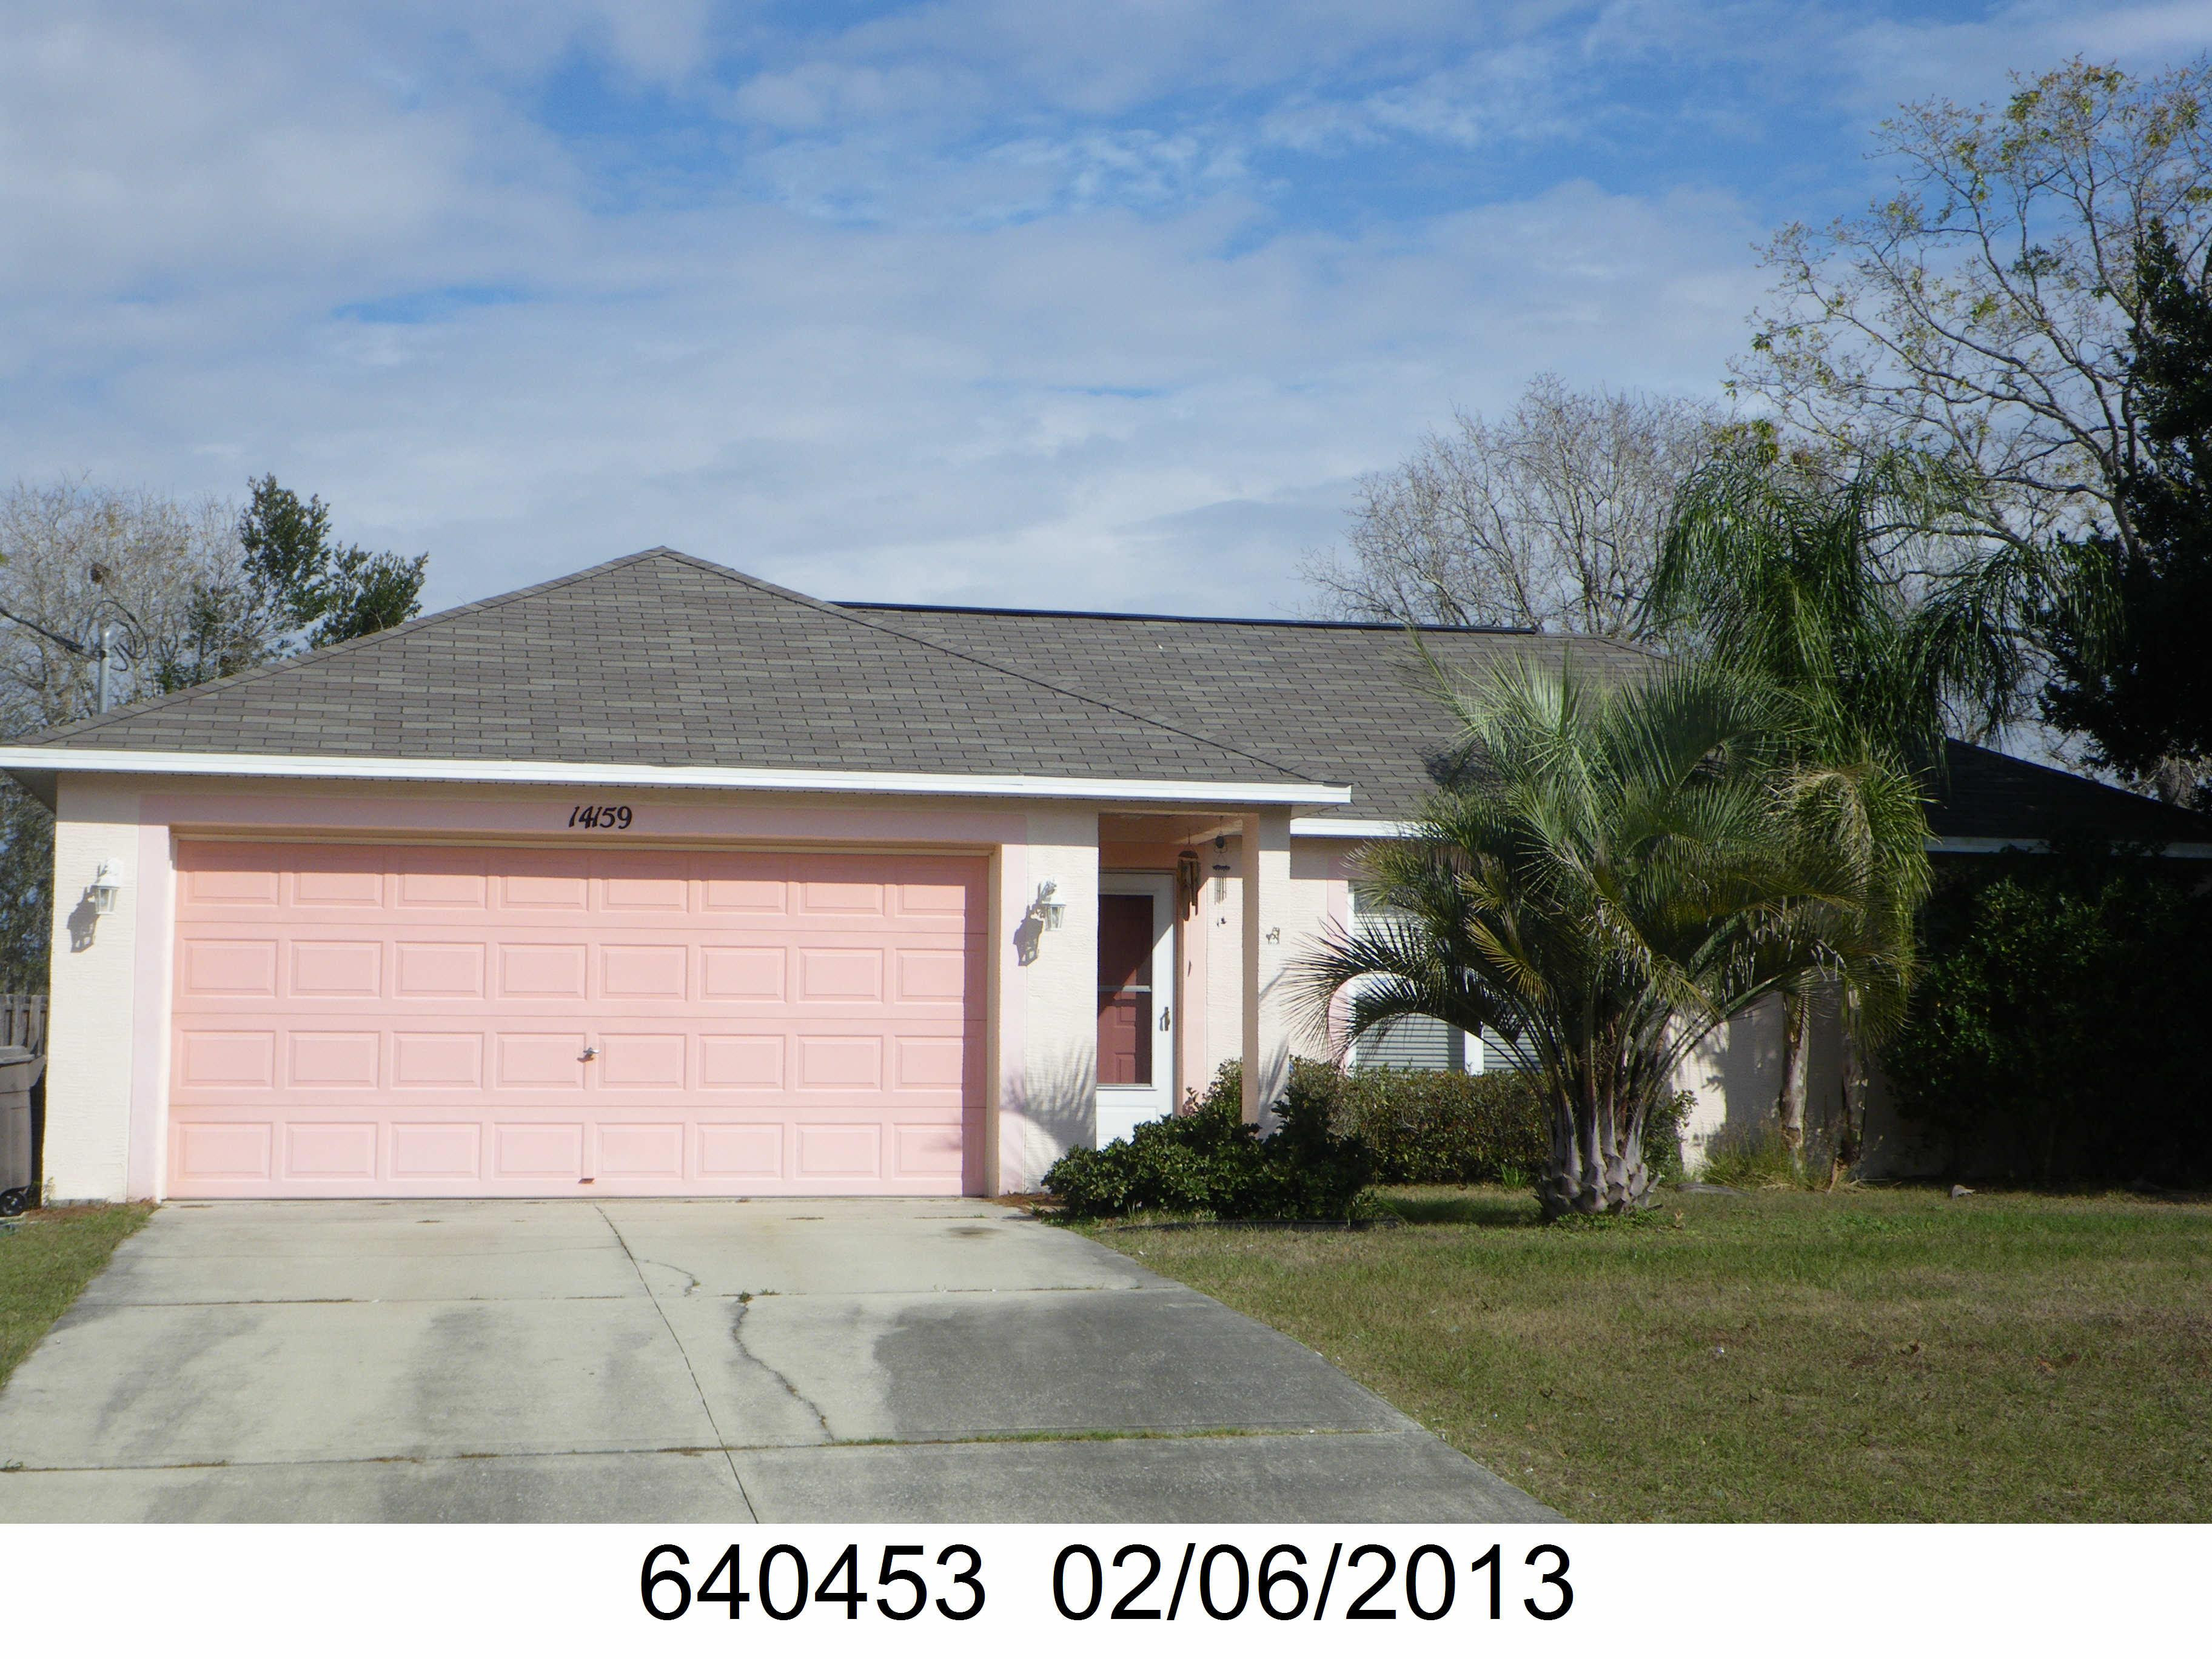 Spring Hill, Florida Homes, Spring Hill, FL Real Estate, CHIPPENDALE ST, For Sale By Owner Homes